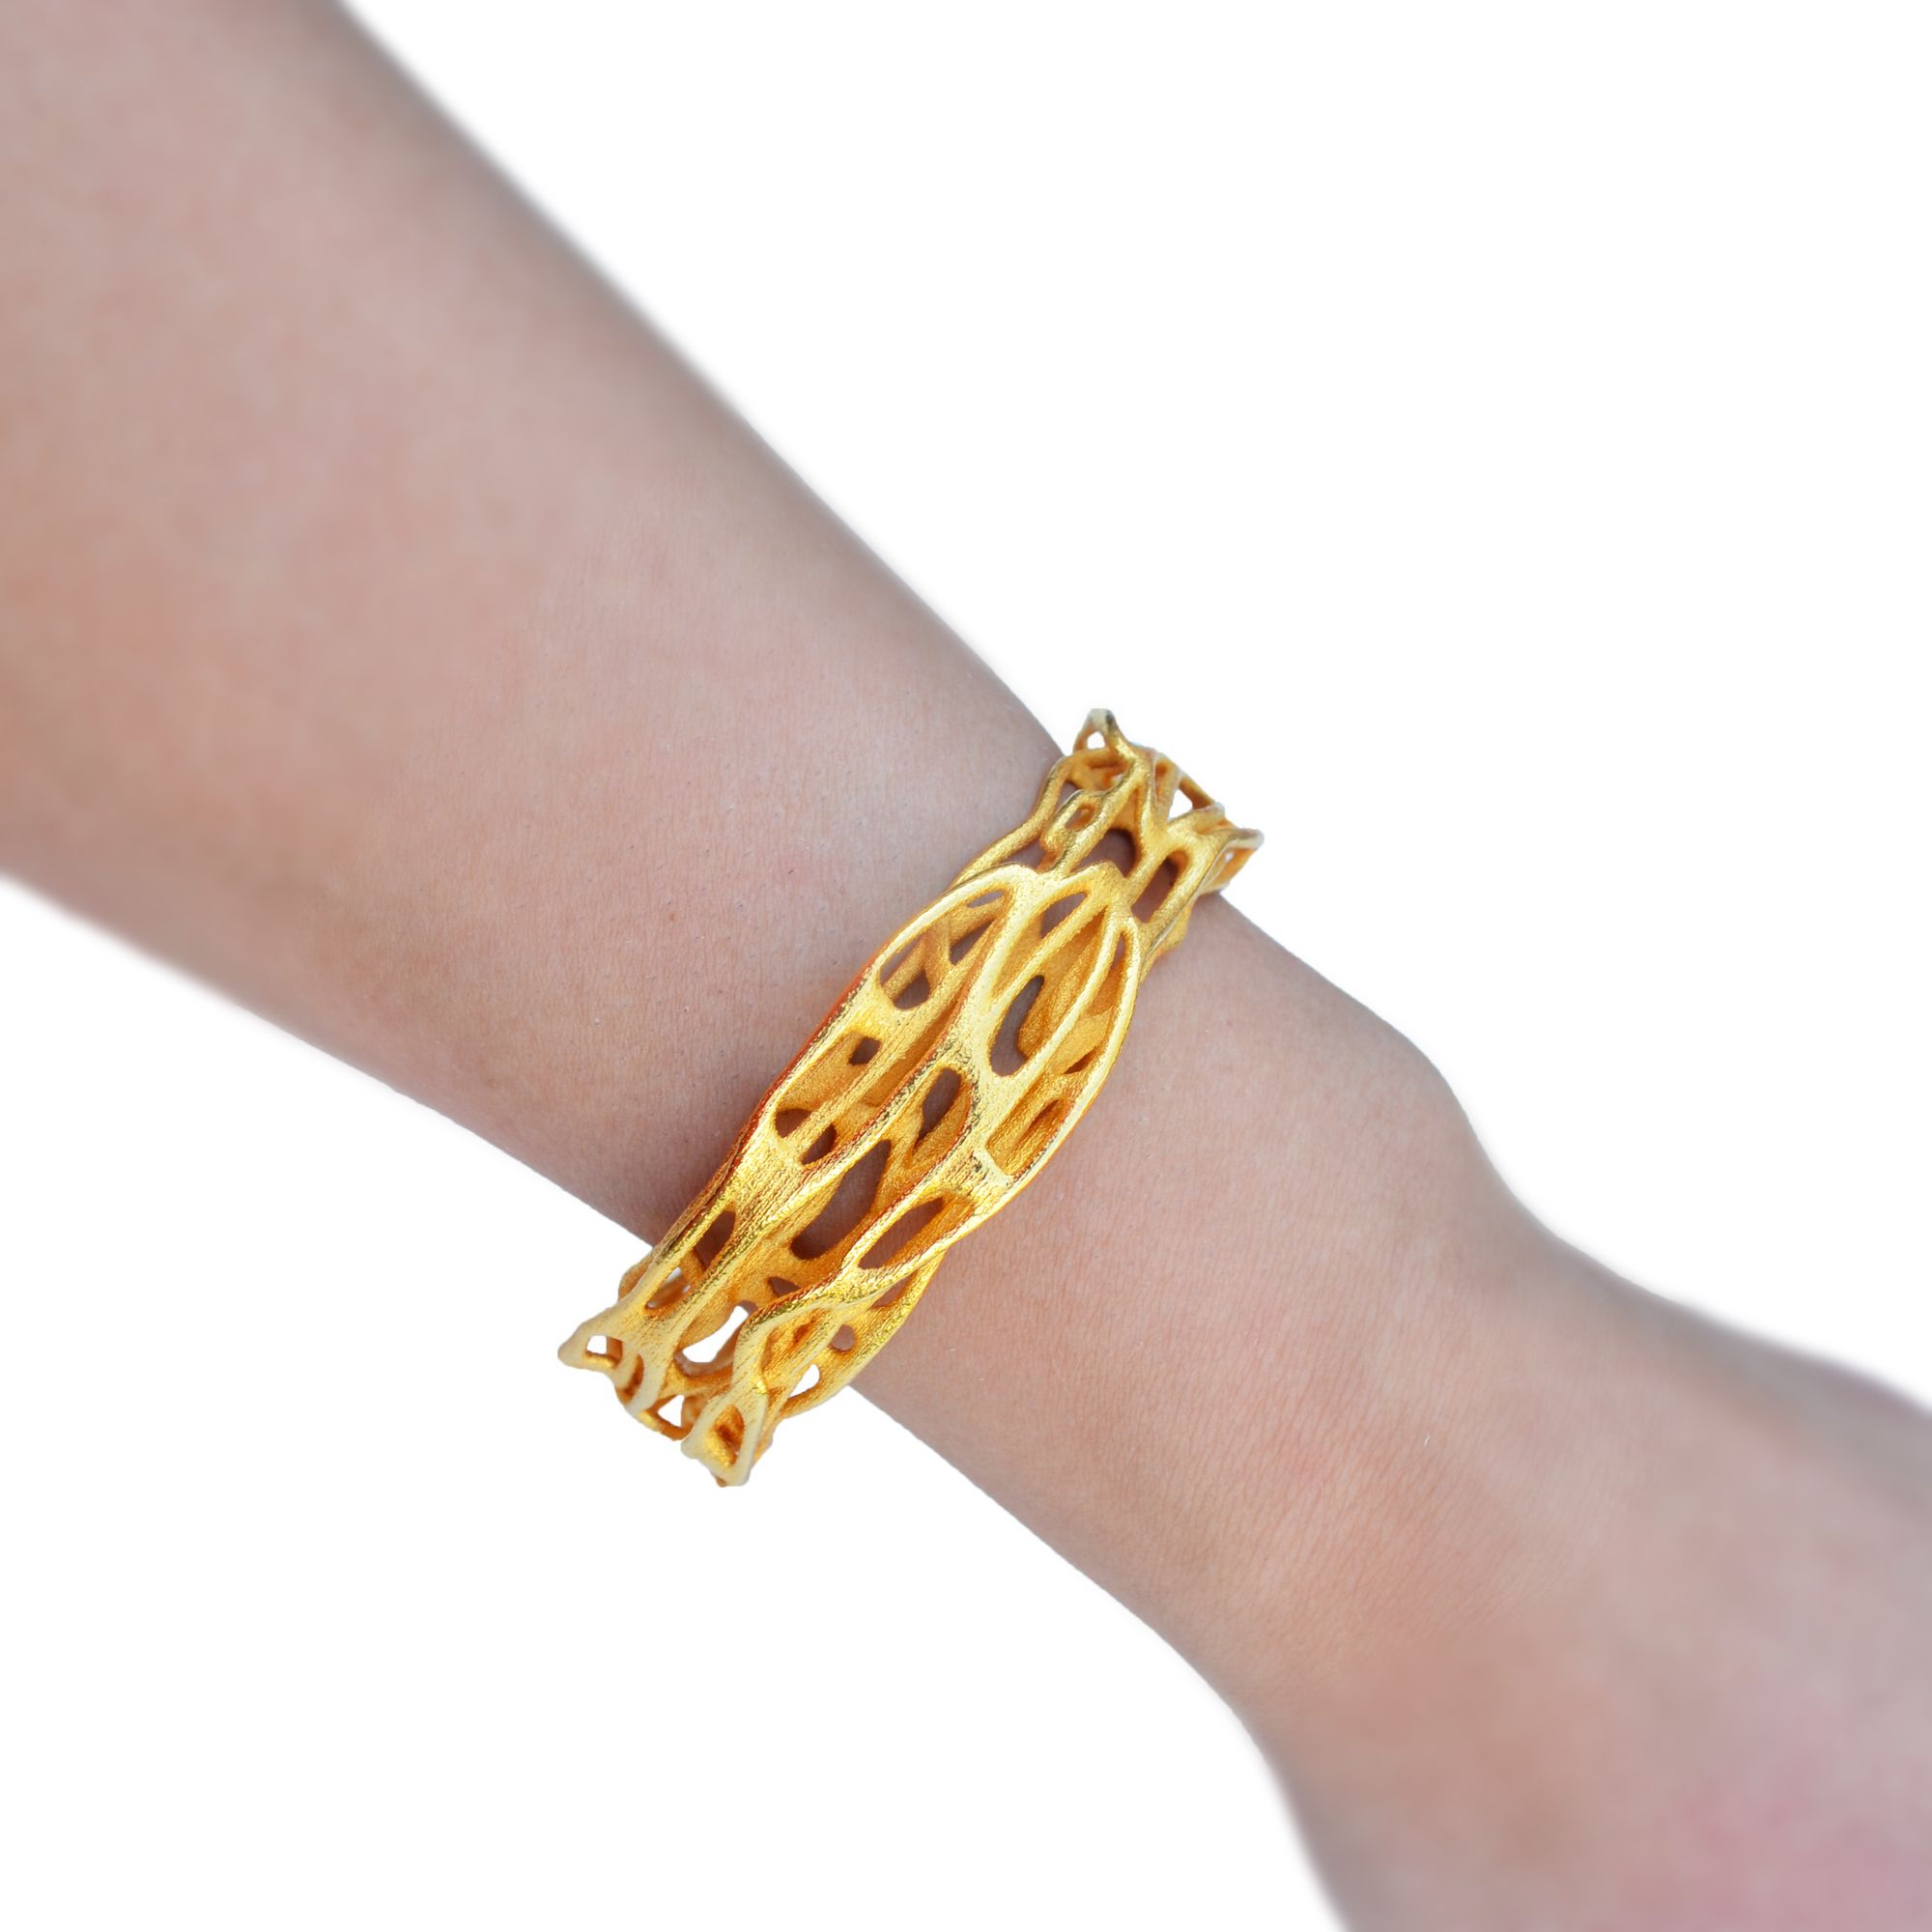 brace d beautiful jewellery design product hand gold heart bracelet crafted m